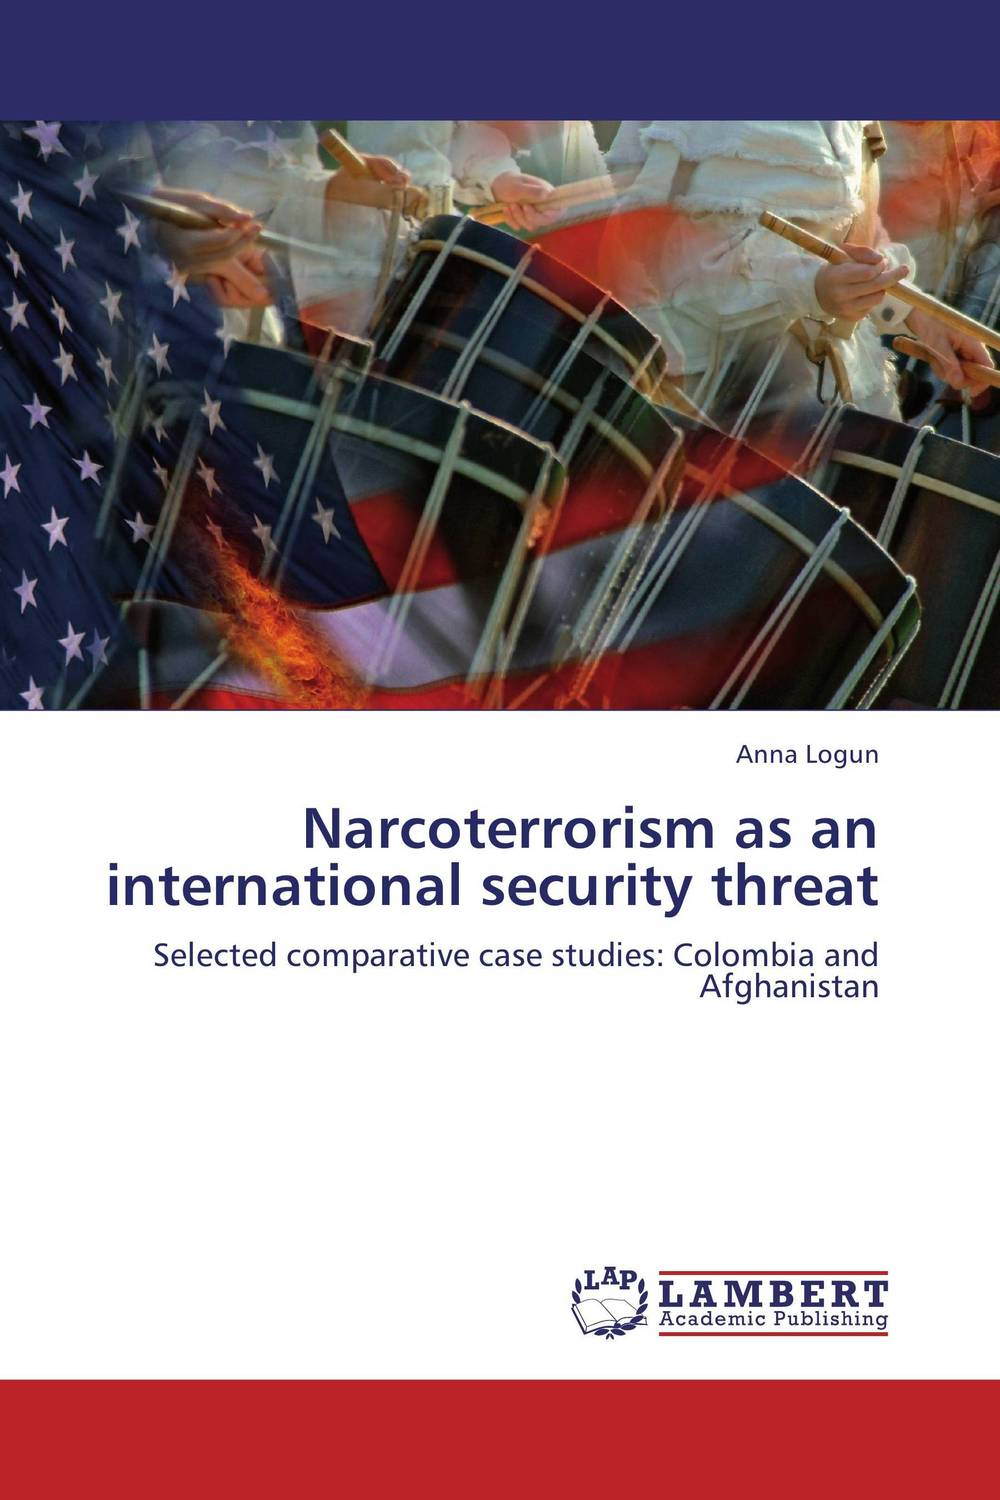 Narcoterrorism as an international security threat point systems migration policy and international students flow